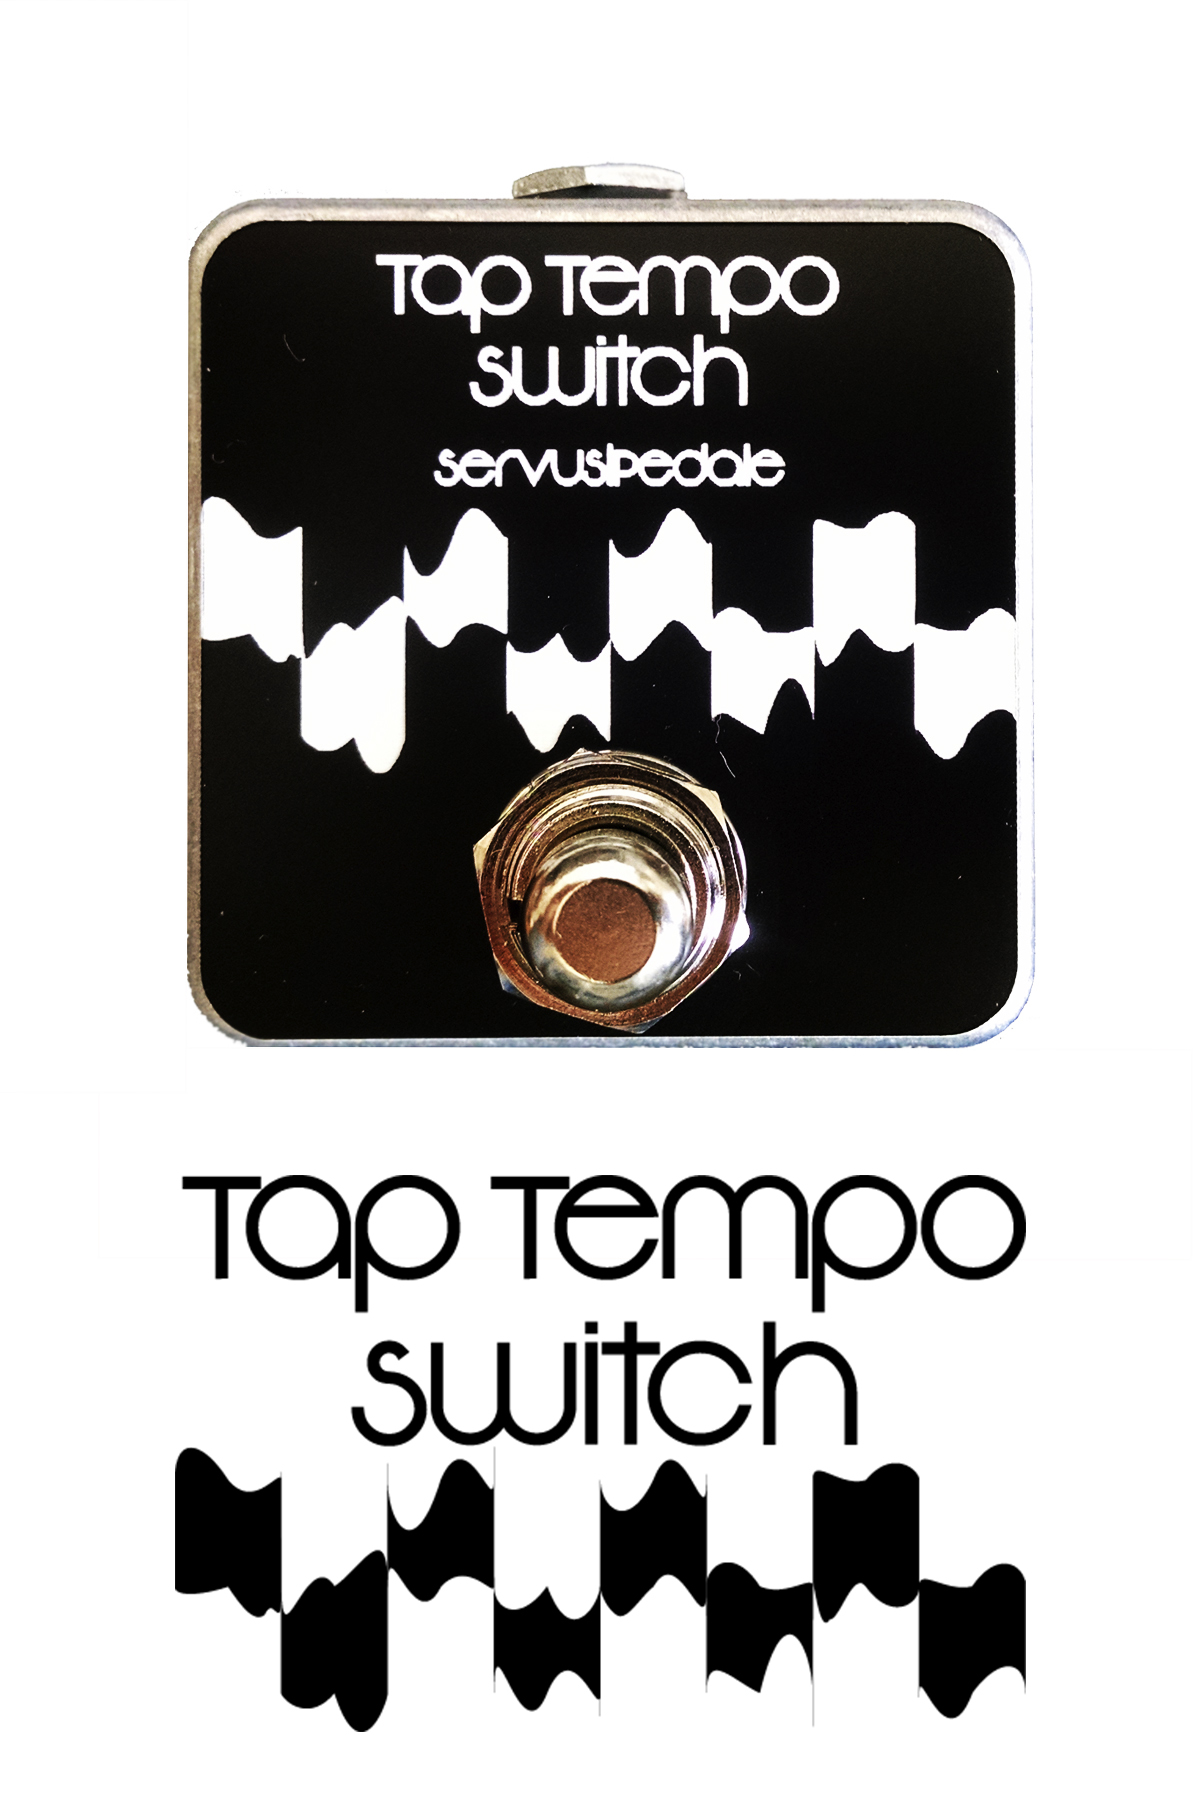 Taptempo